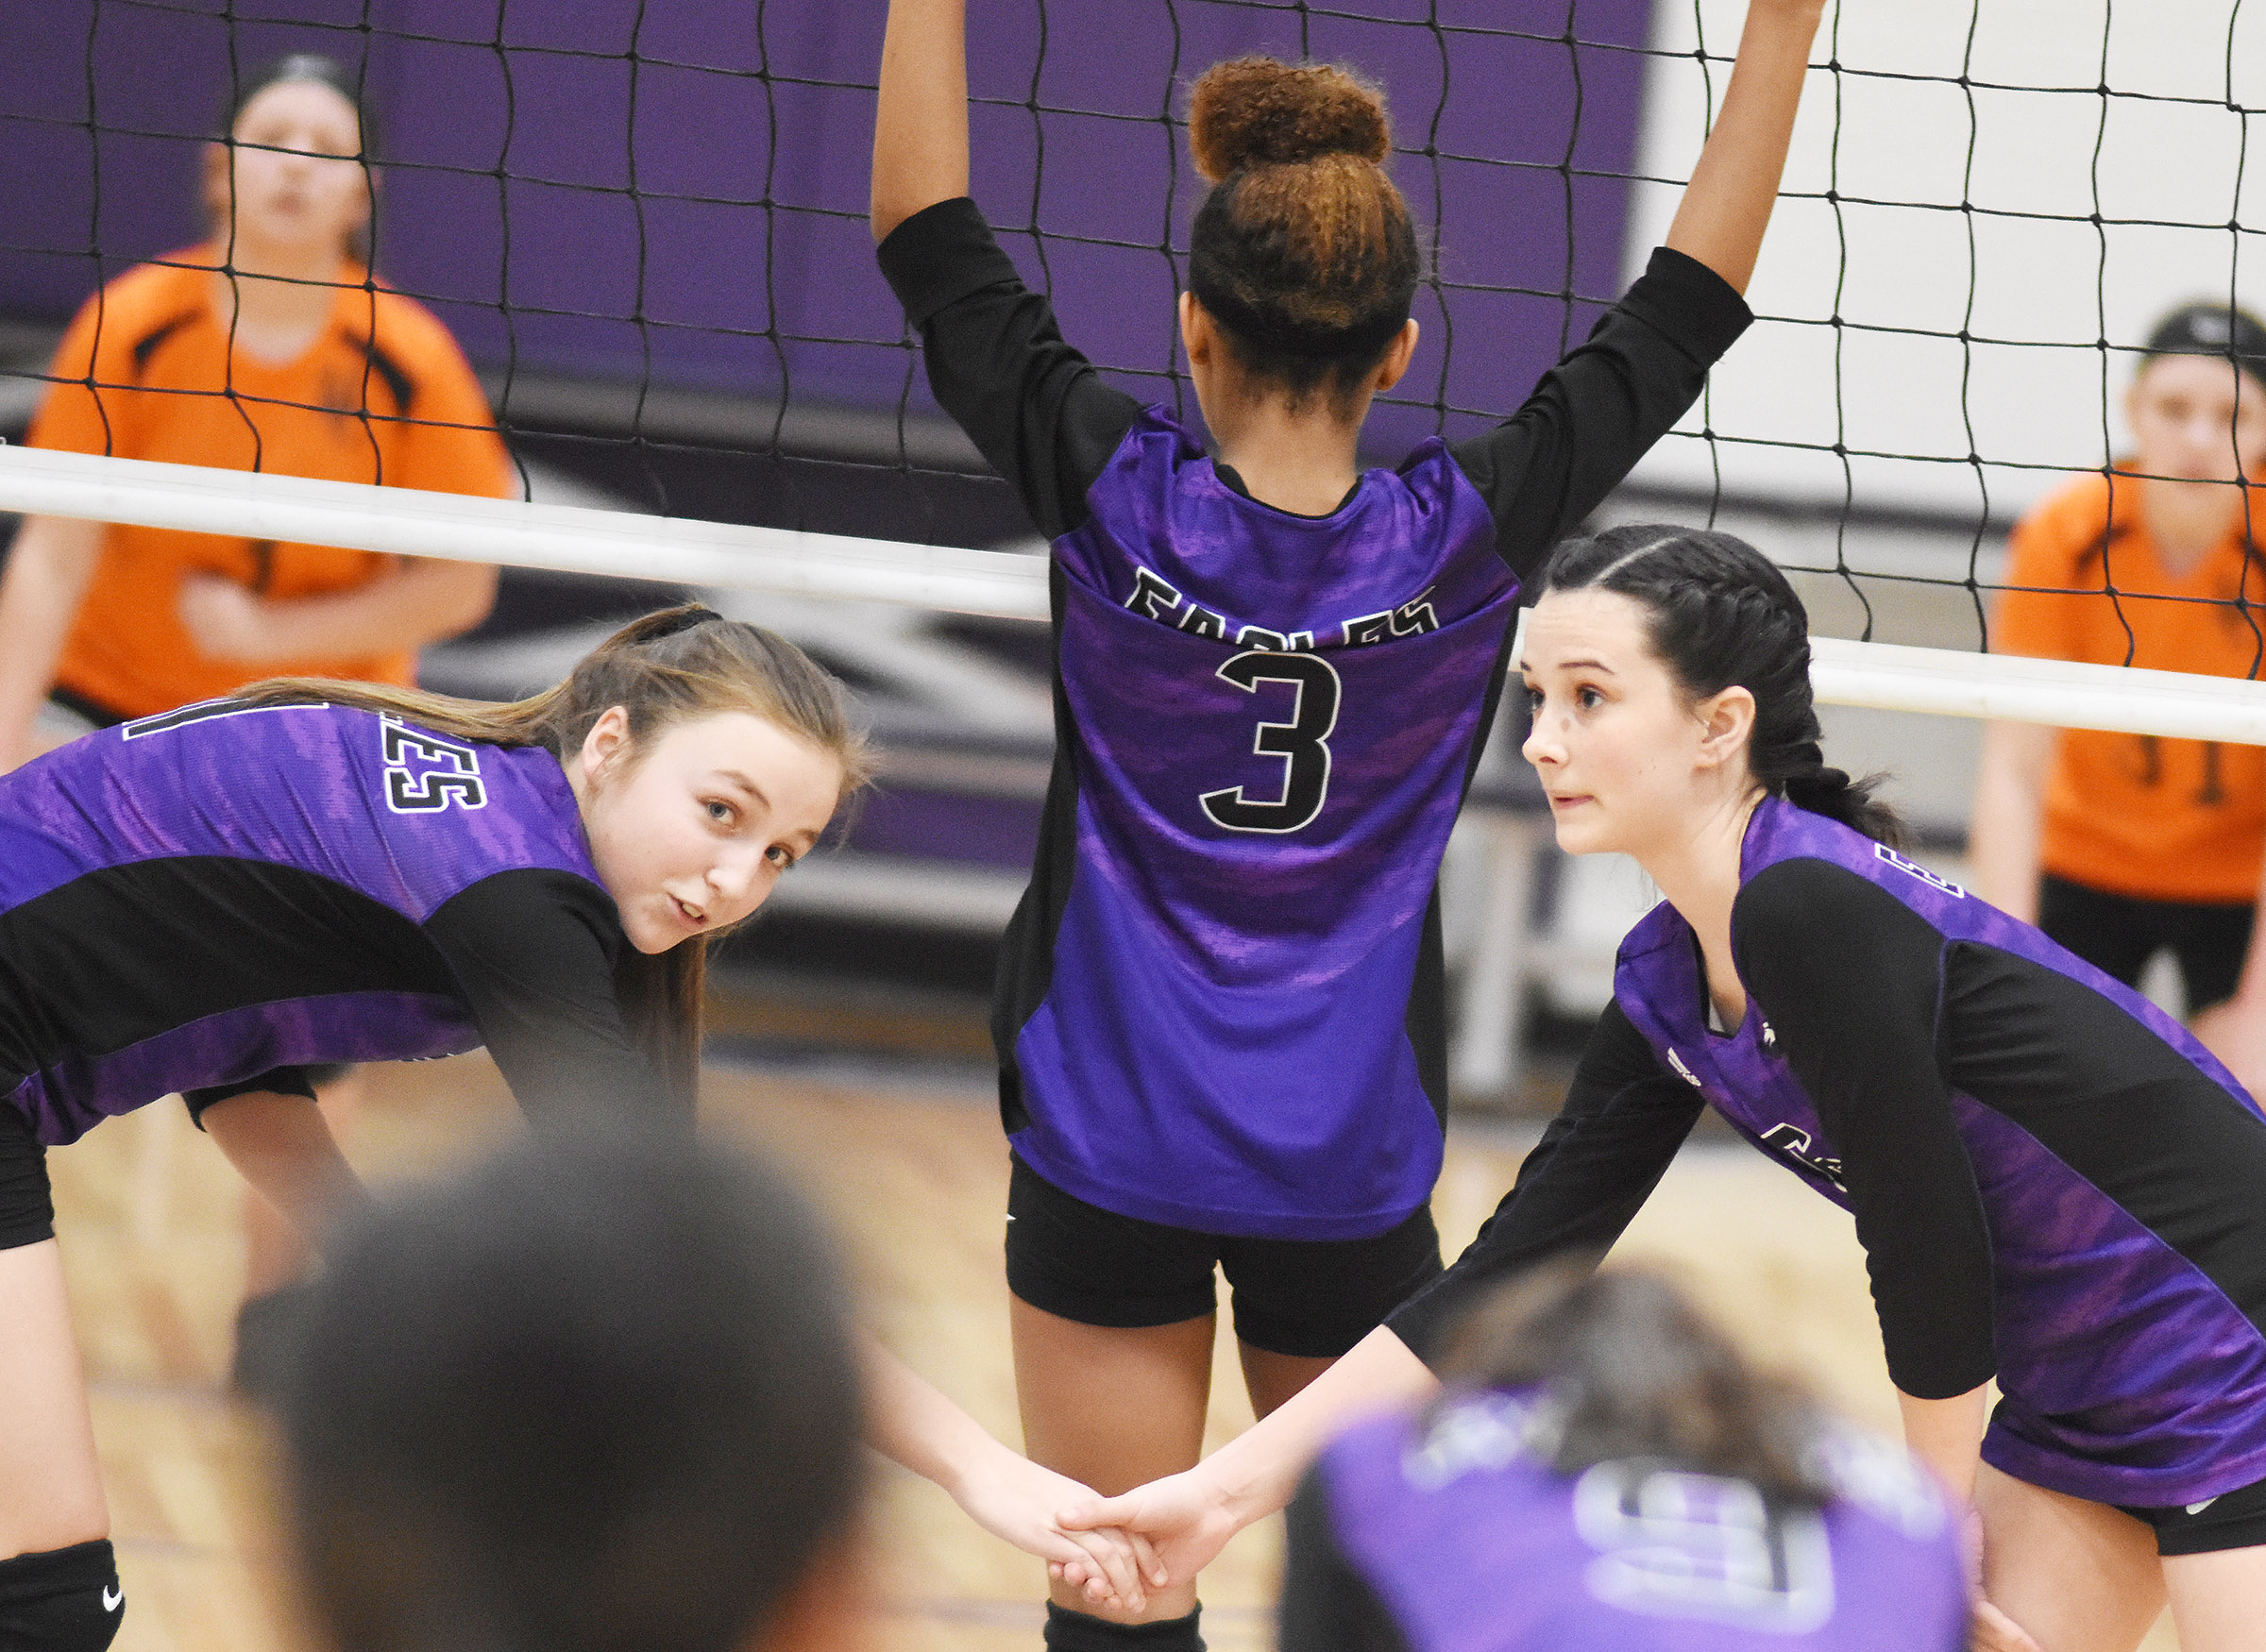 CMS eighth-graders Lainey Watson, at left, and Sarah Adkins watch the serve.